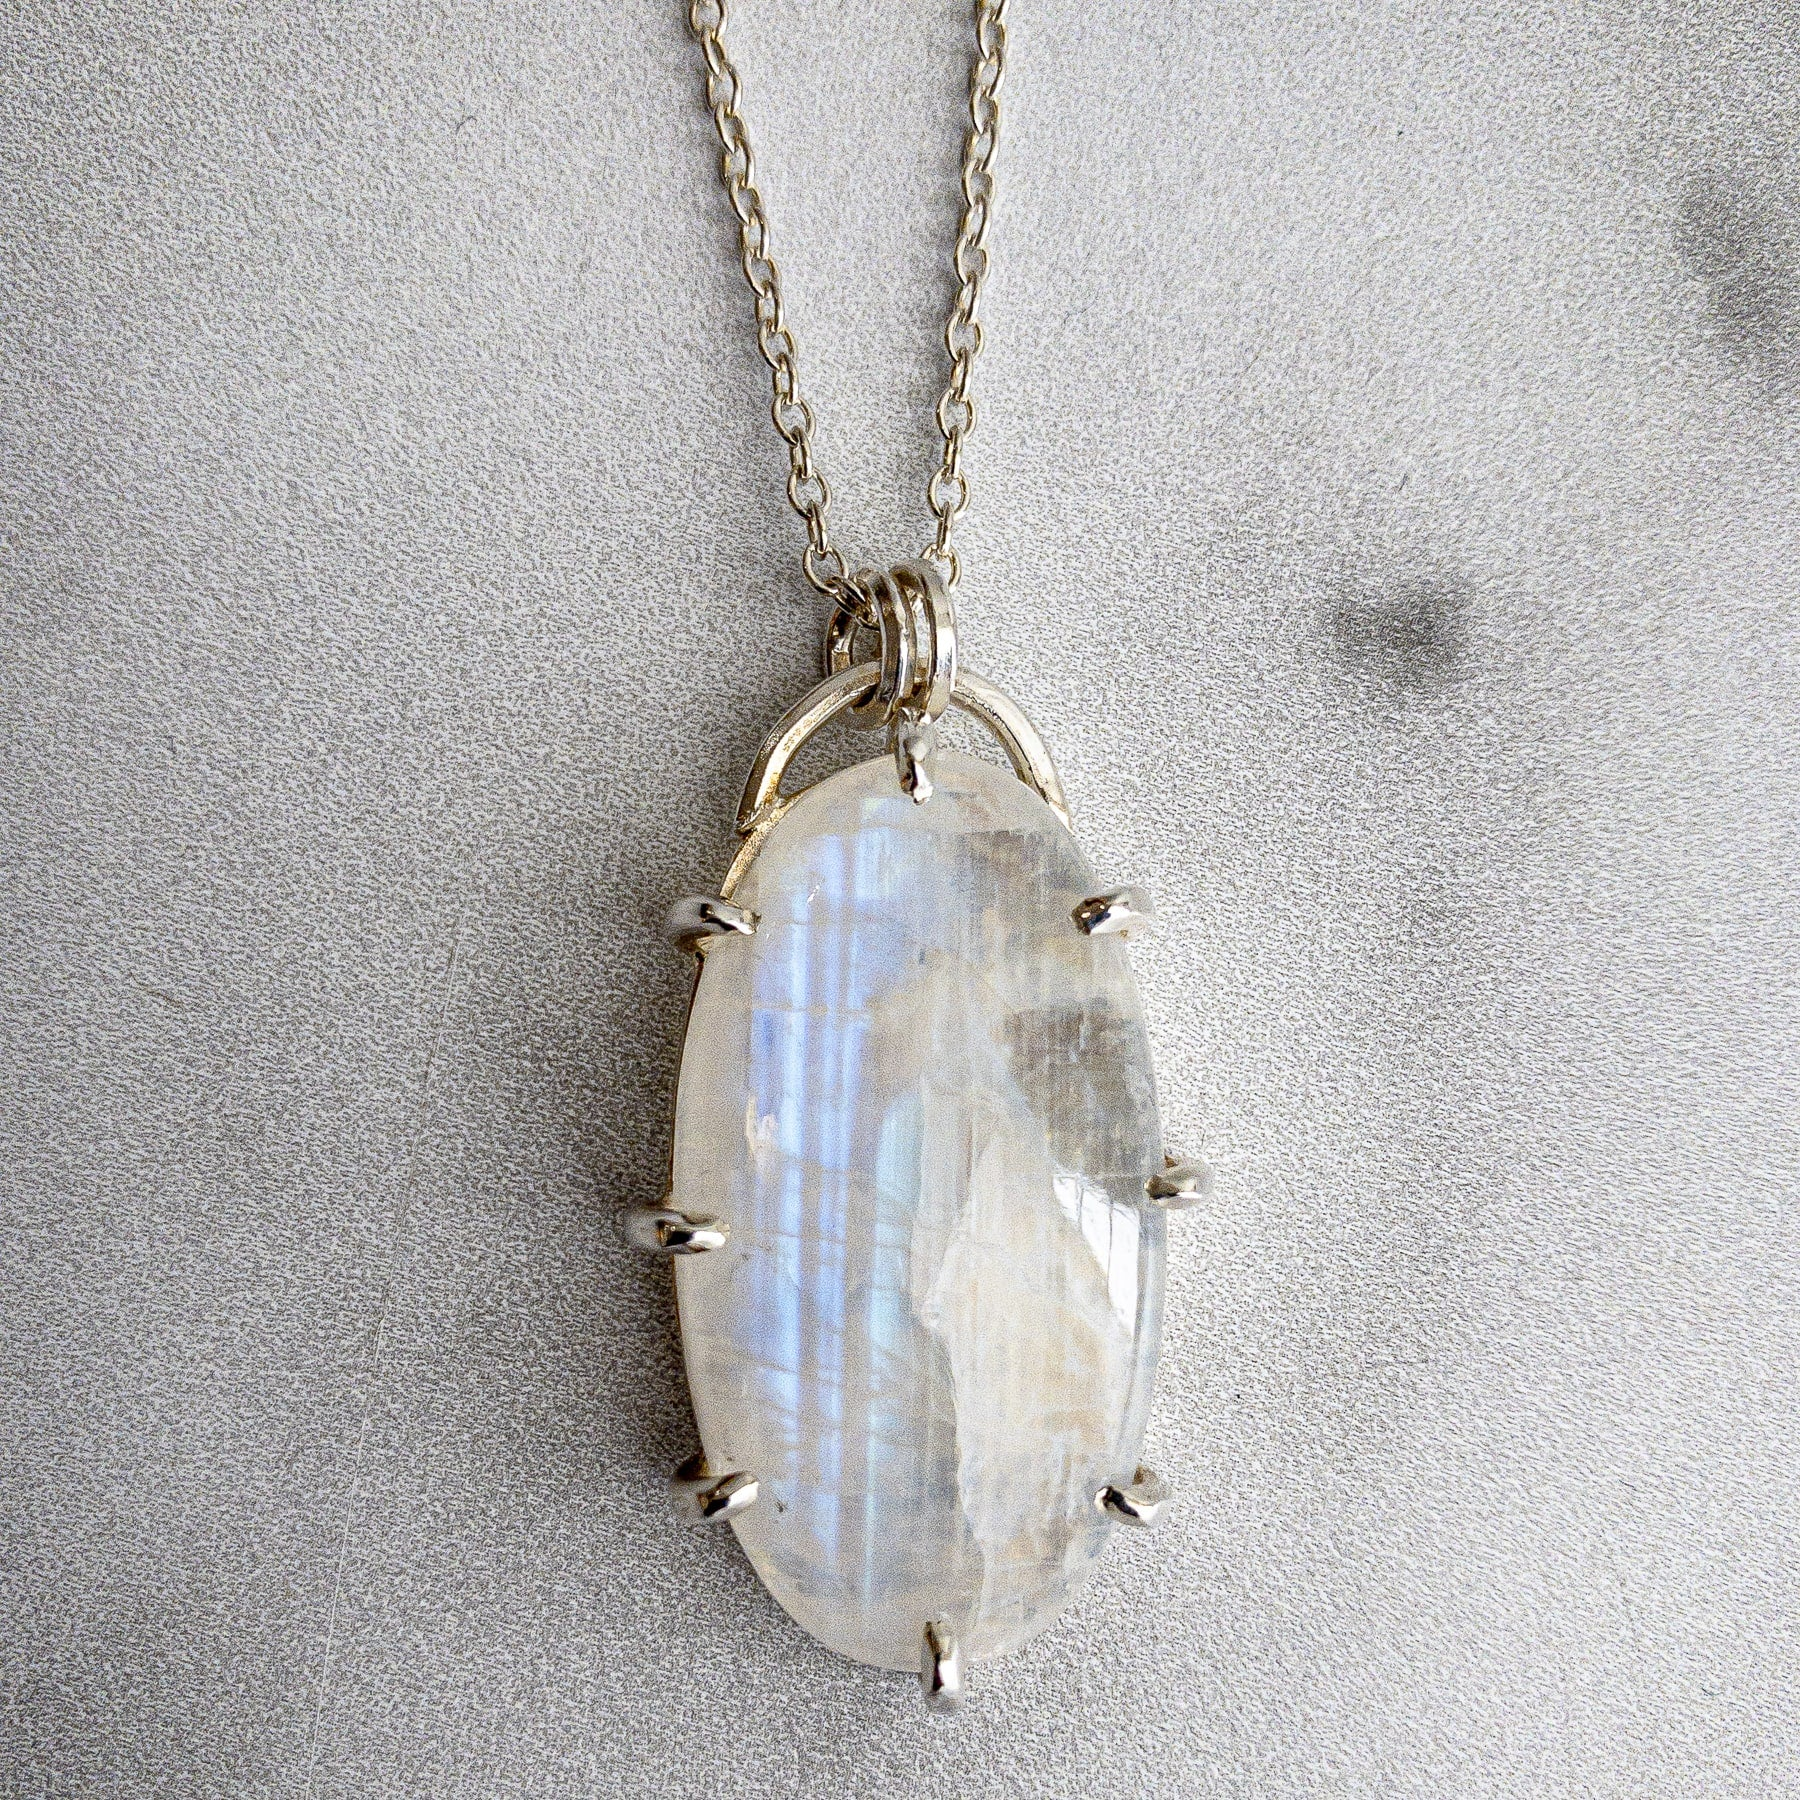 Rainbow Moonstone Pendant/Necklace in Oxidized Sterling